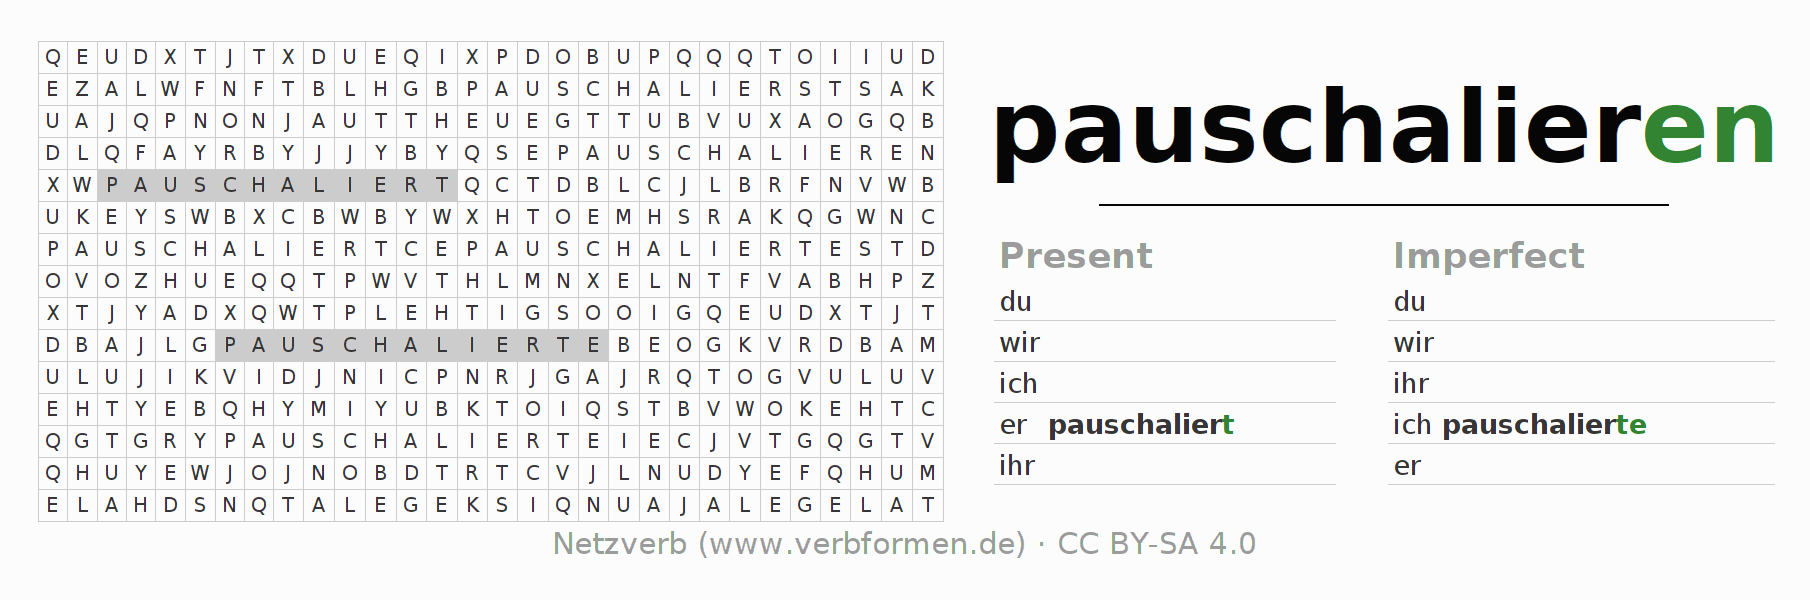 Word search puzzle for the conjugation of the verb pauschalieren